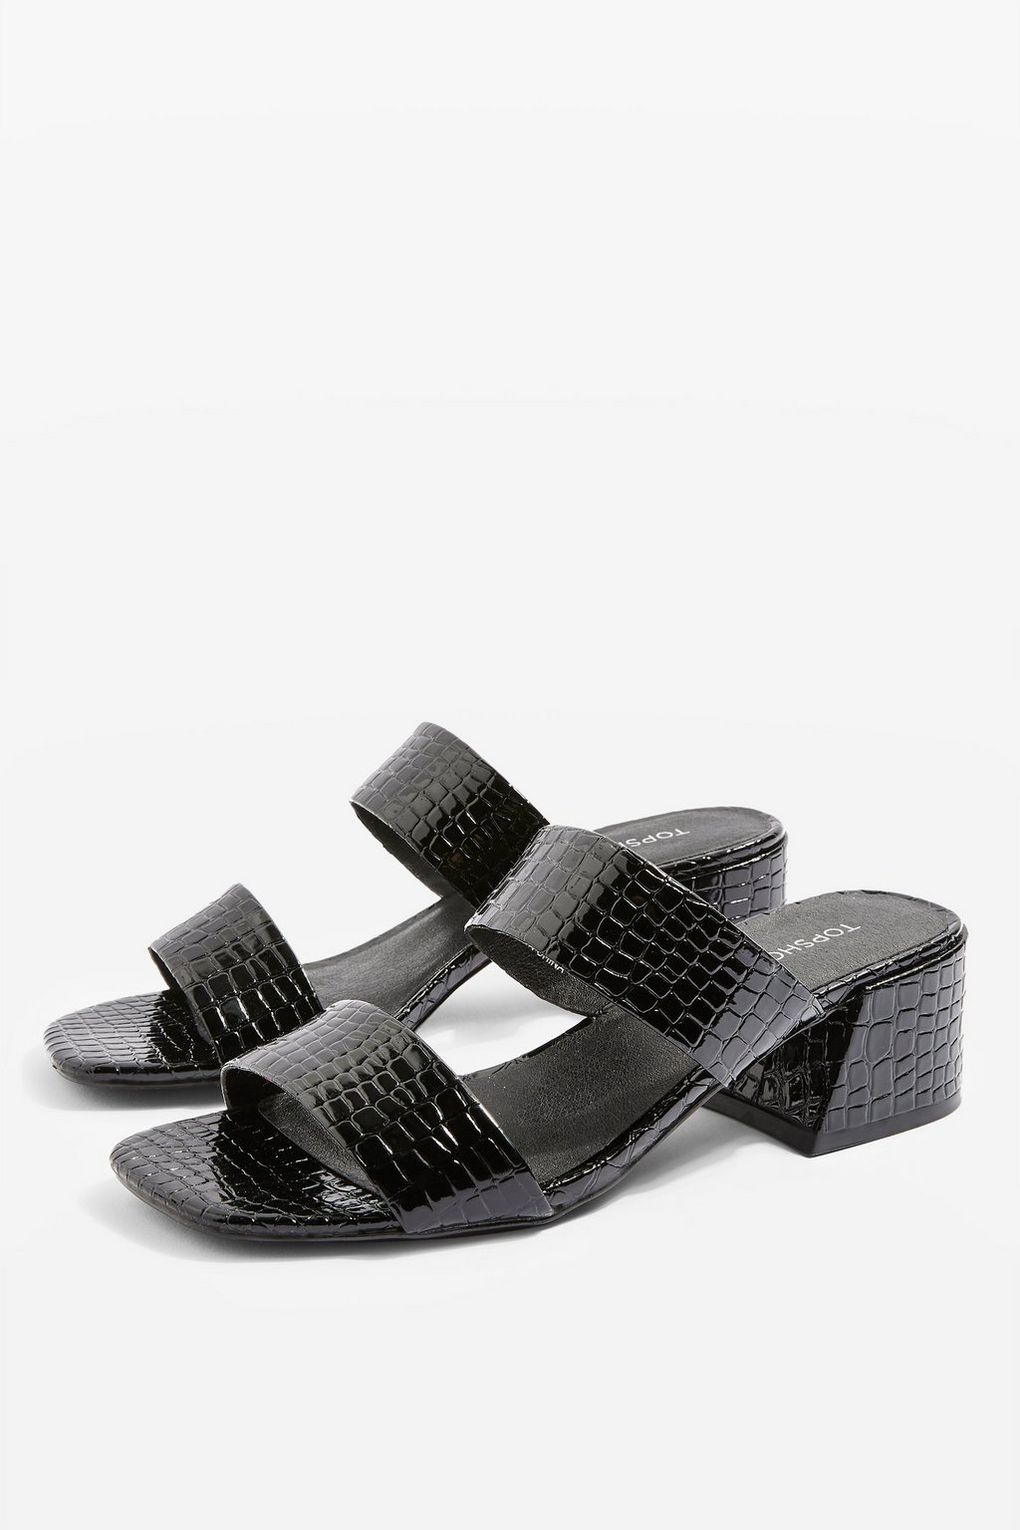 Topshop: Downtown Crocodile Mules / $